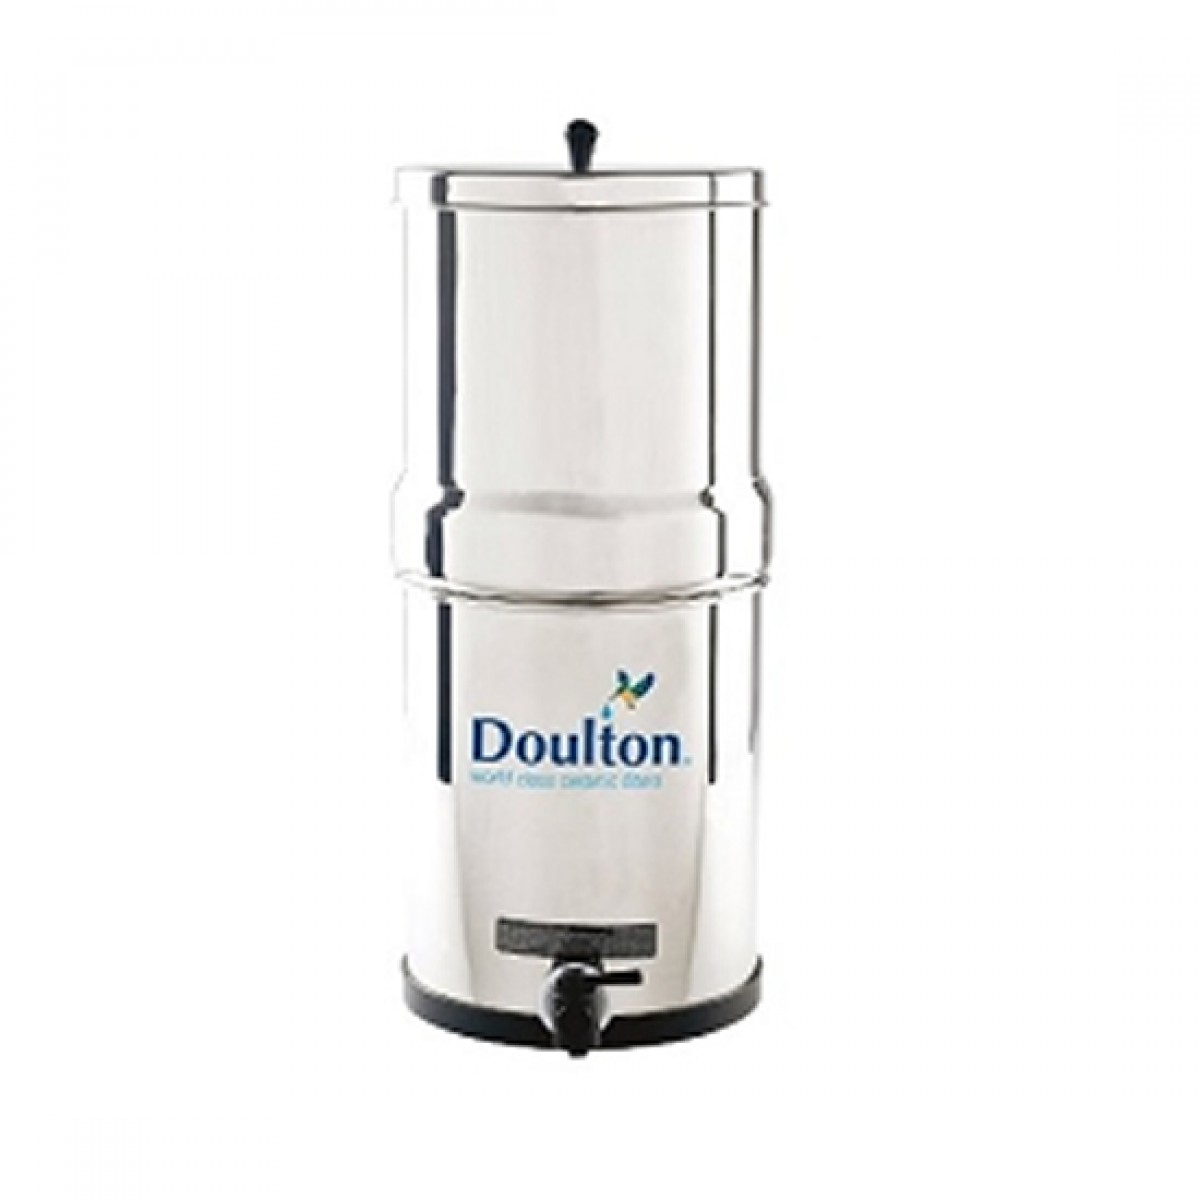 Doulton W9361122 Countertop Water Filter System